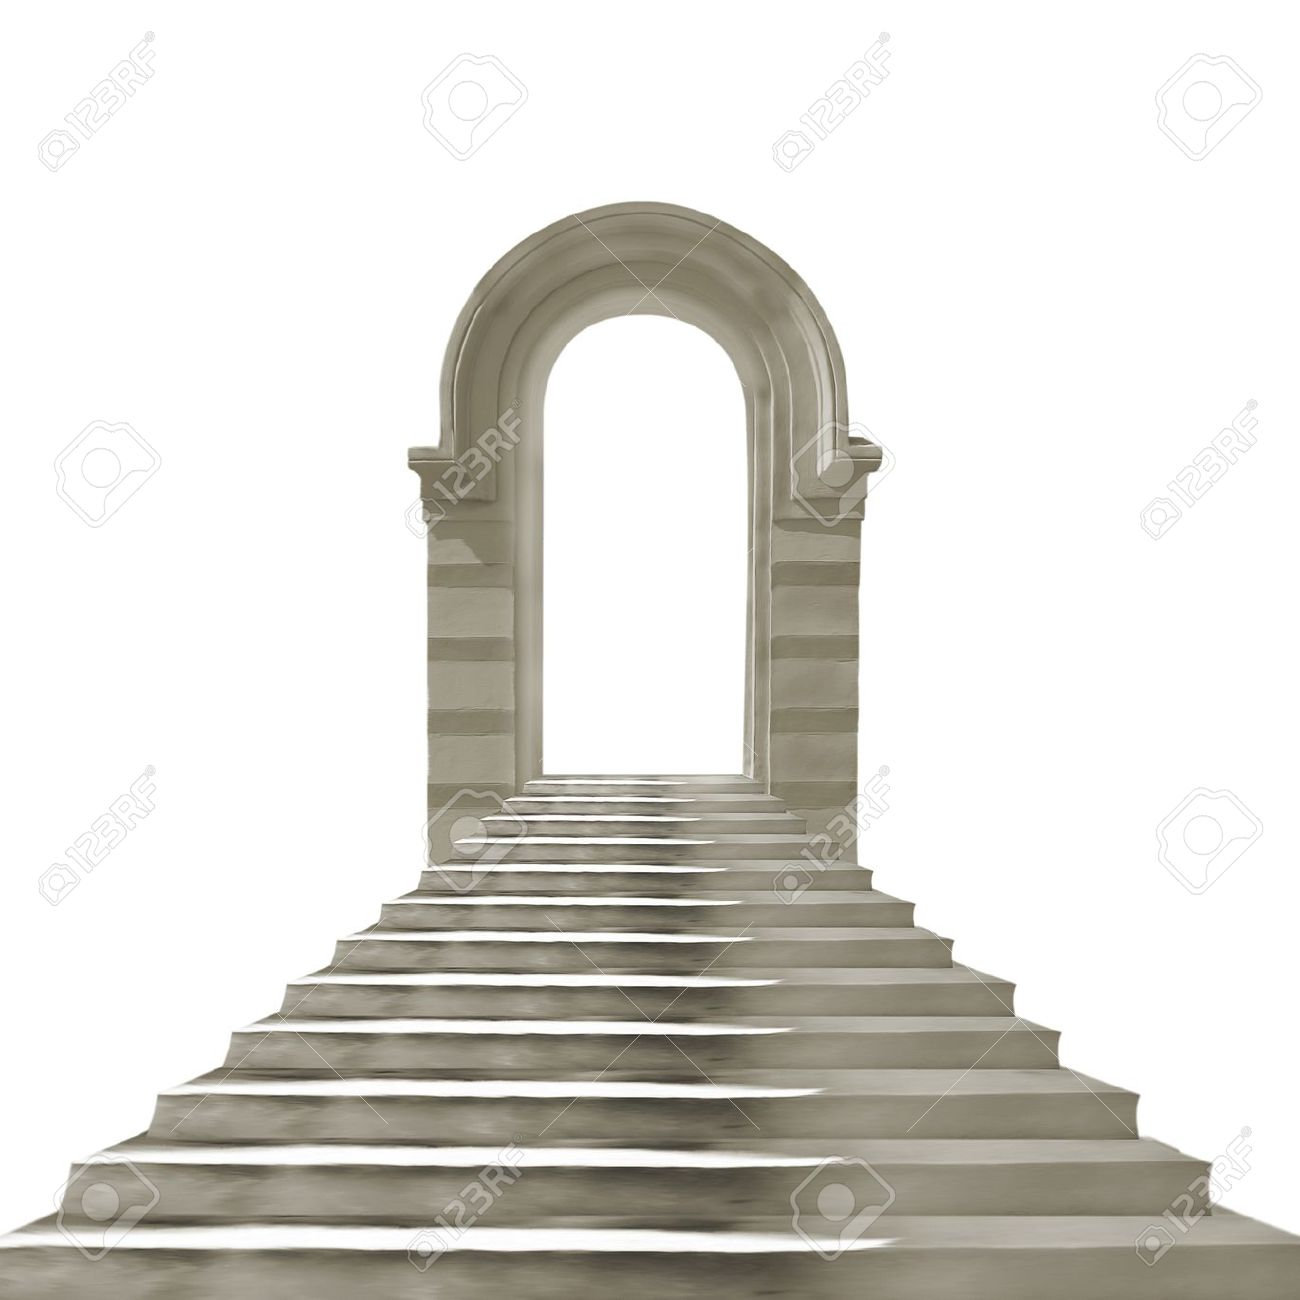 Royal stairs clipart background.